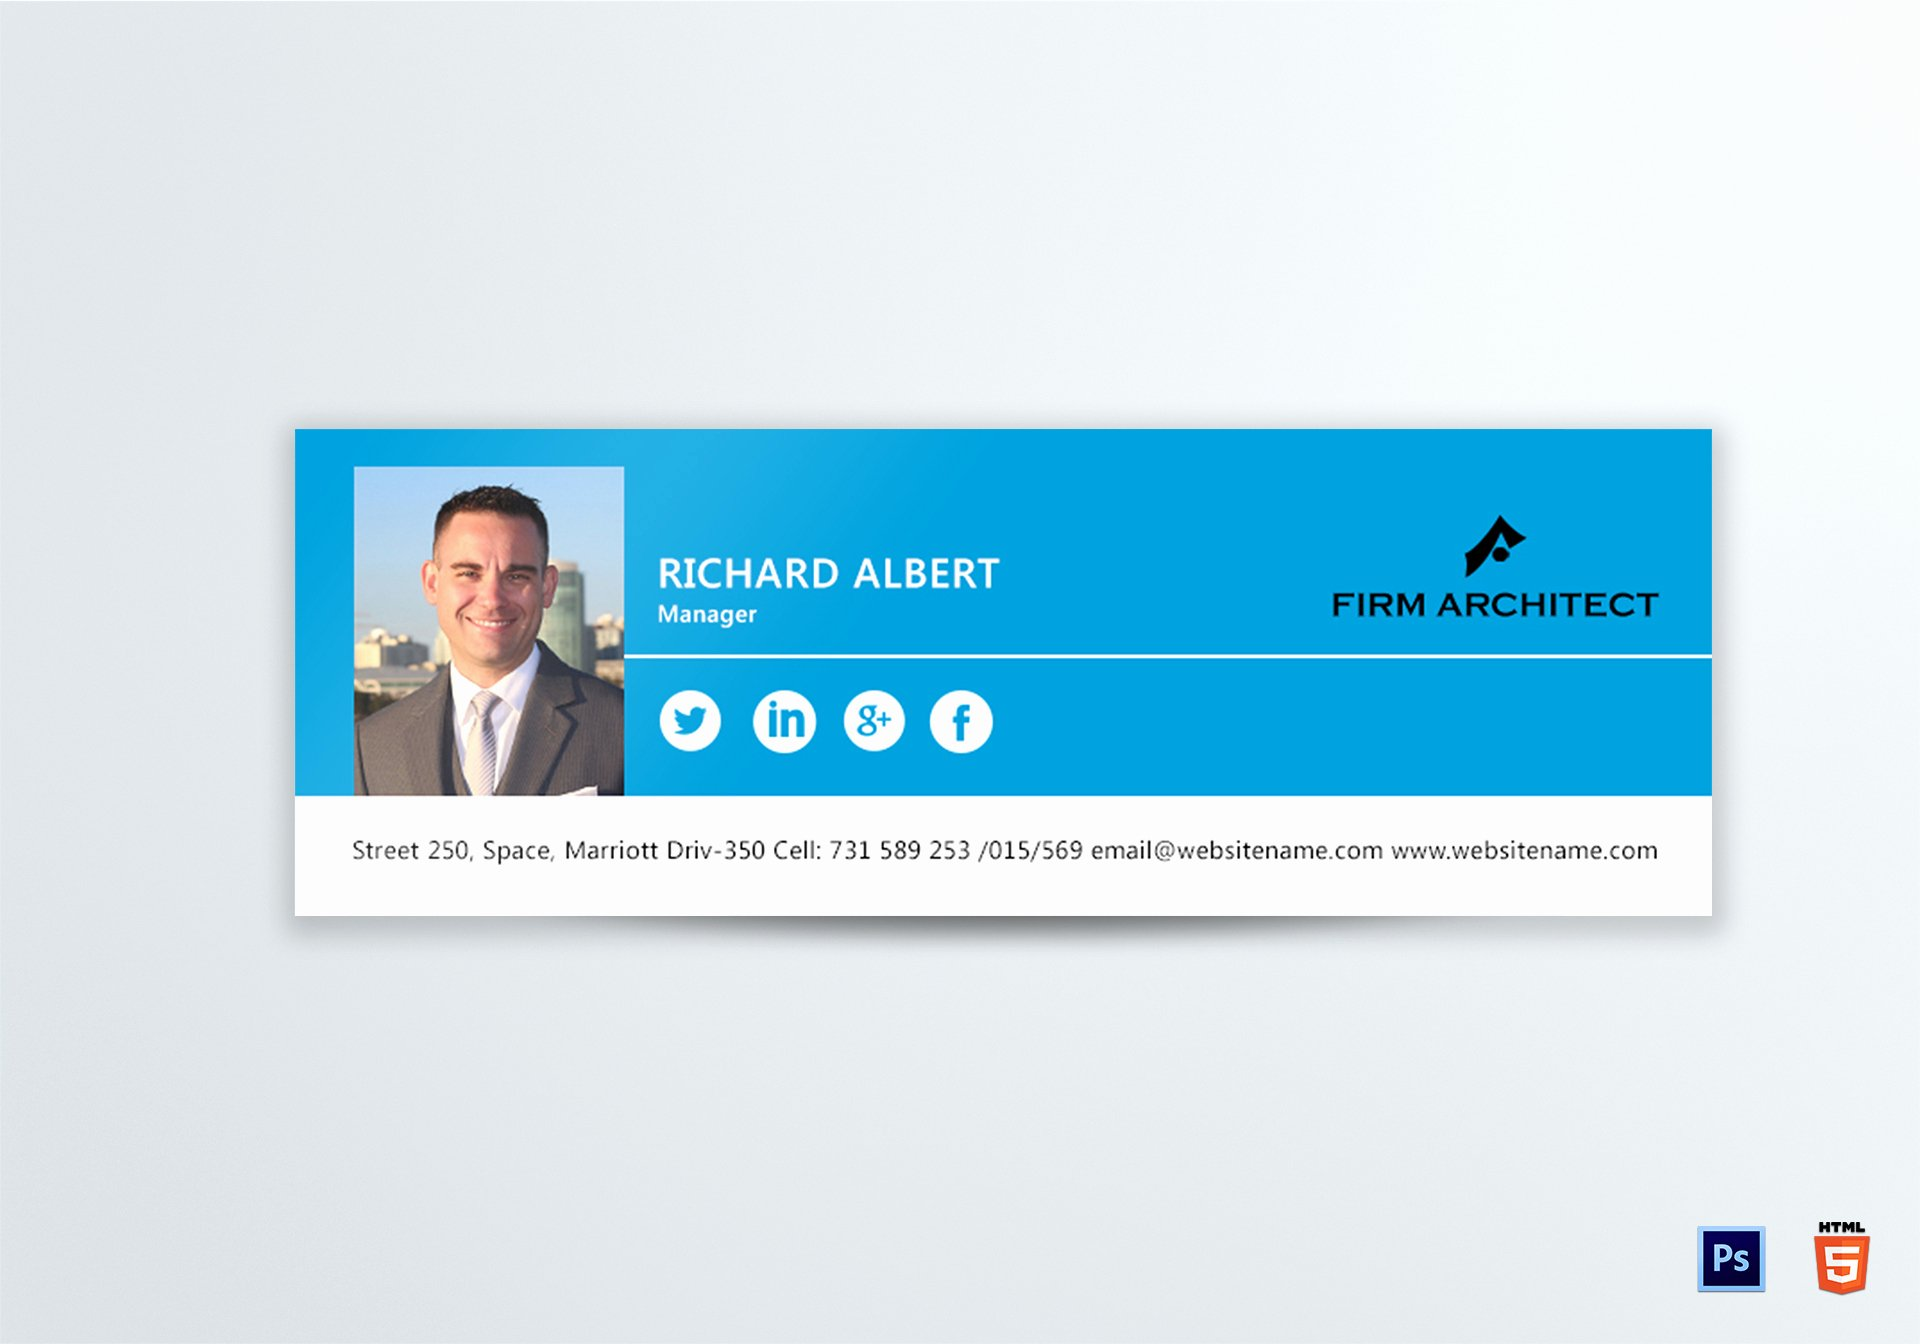 Html Email Signature Template Unique Design Architect Email Signature Design Template In Psd HTML